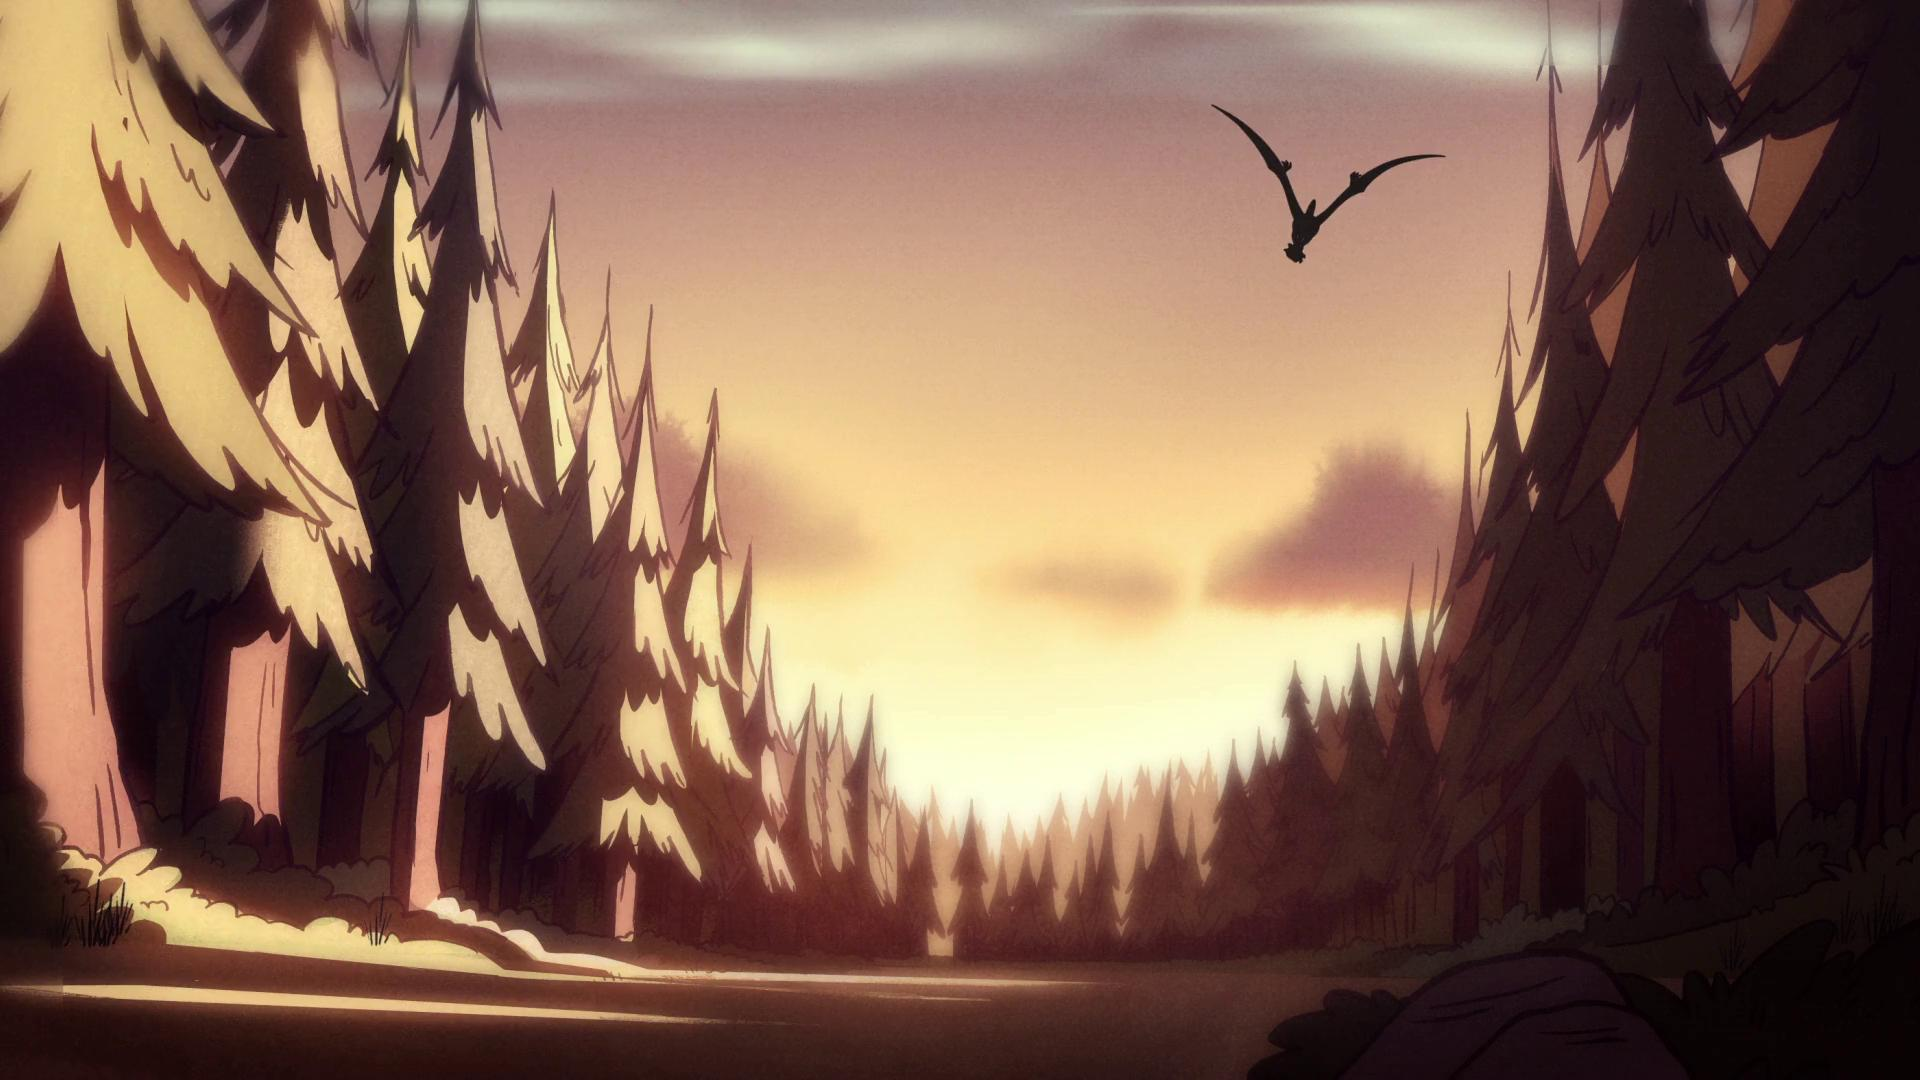 Gravity Falls Wallpaper For Computer Gravity Falls Wallpapers Wallpaper Cave